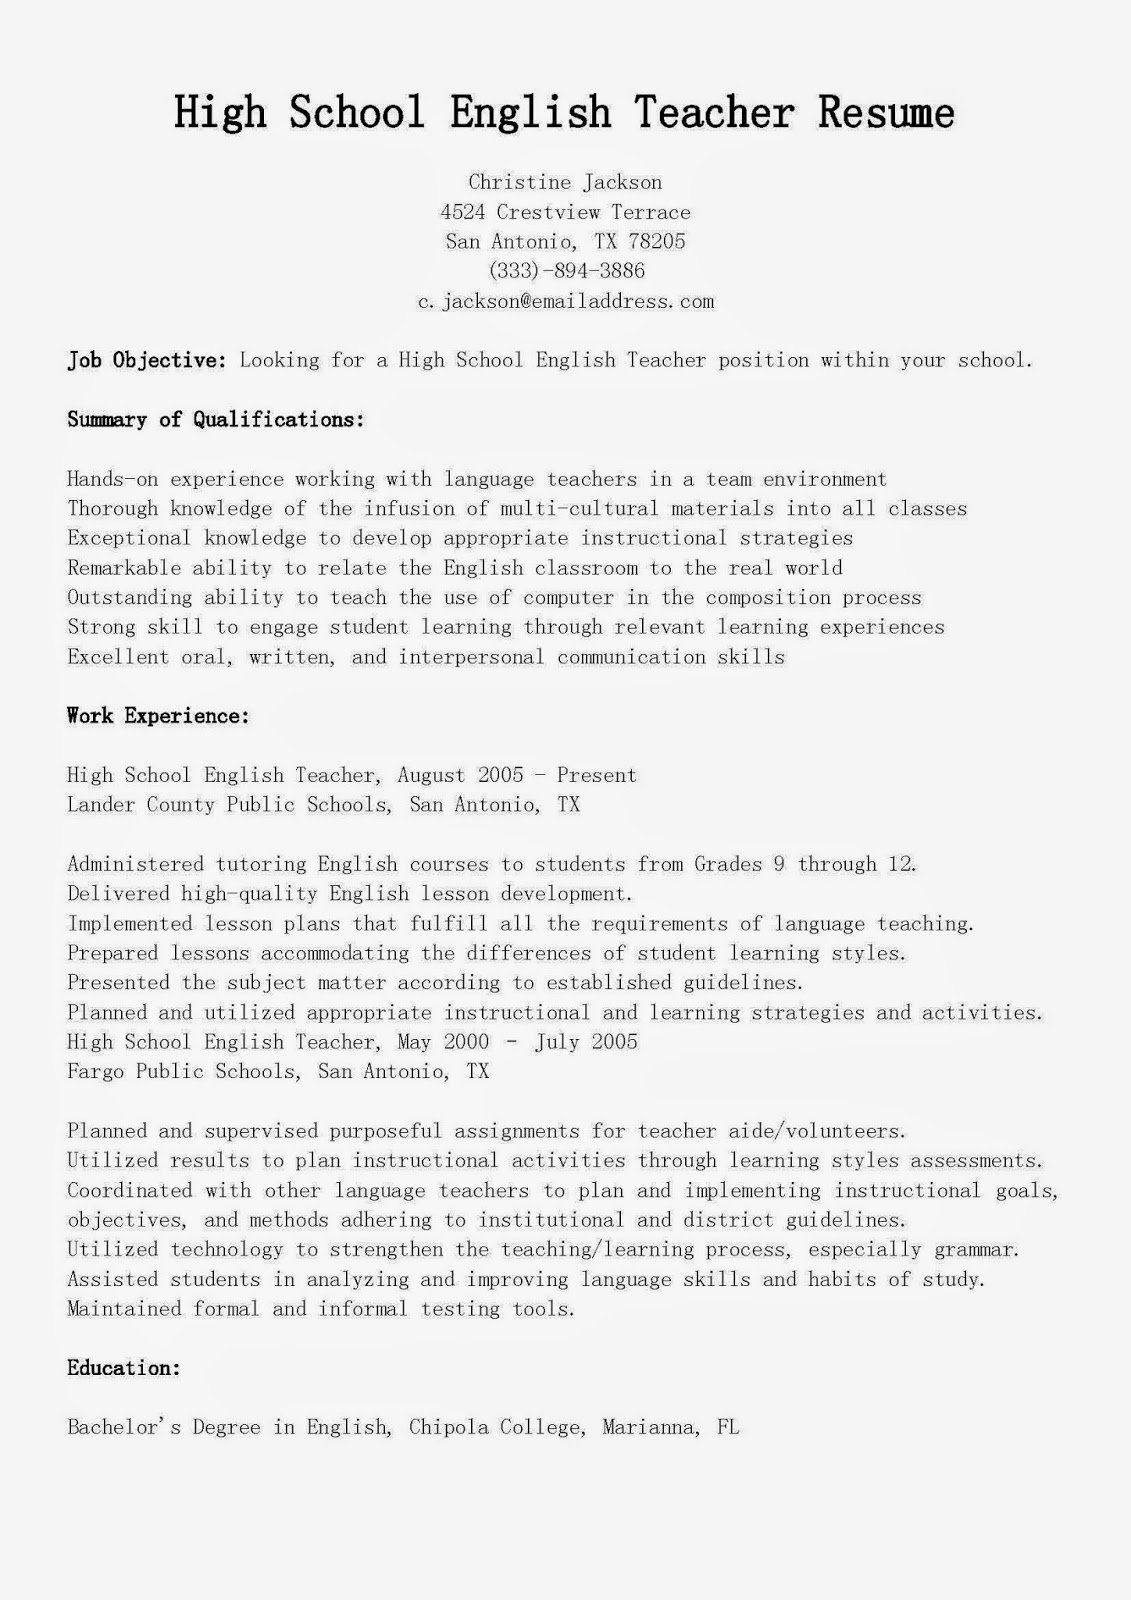 25 high school teacher resume in 2020 middle objective for accounting fresh graduate cashier statements samples professional summary accountant